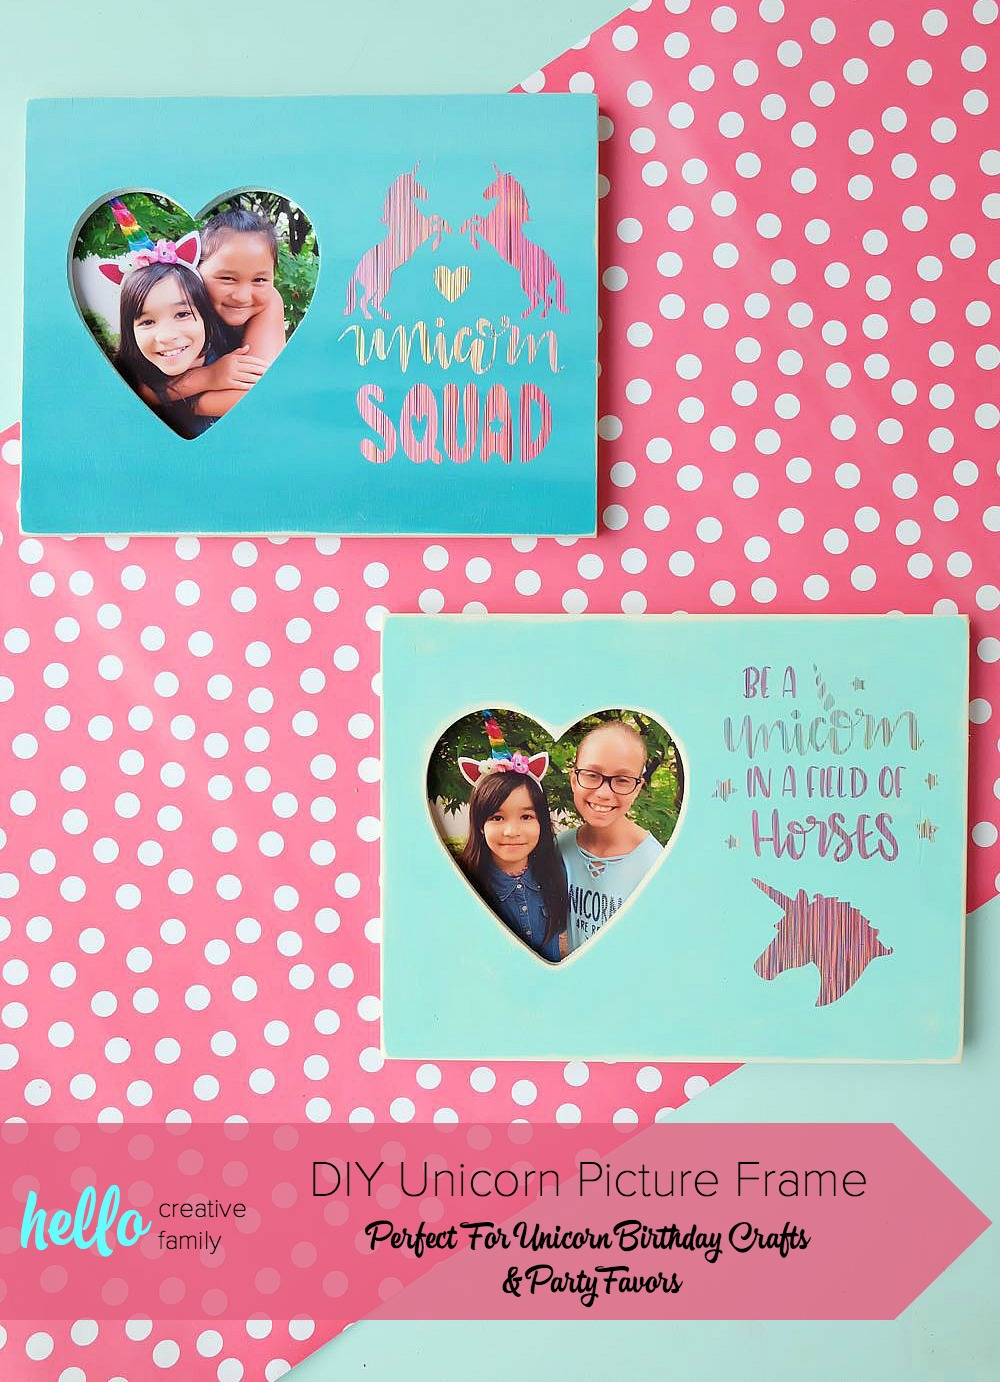 diy unicorn picture frame perfect for unicorn birthday crafts and